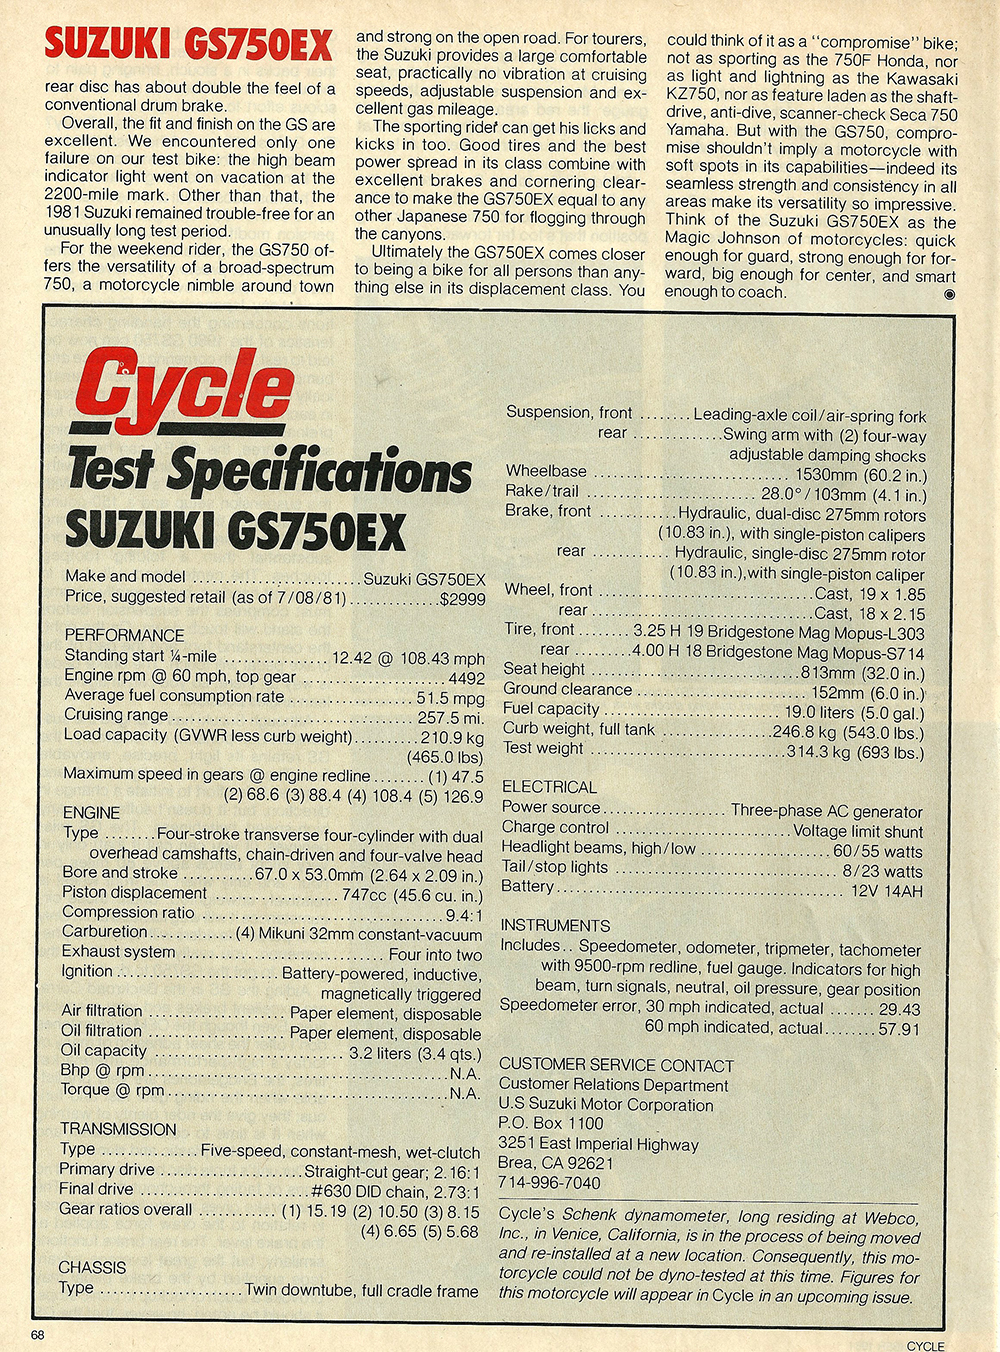 1981 Suzuki GS750 EX road test 06.jpg